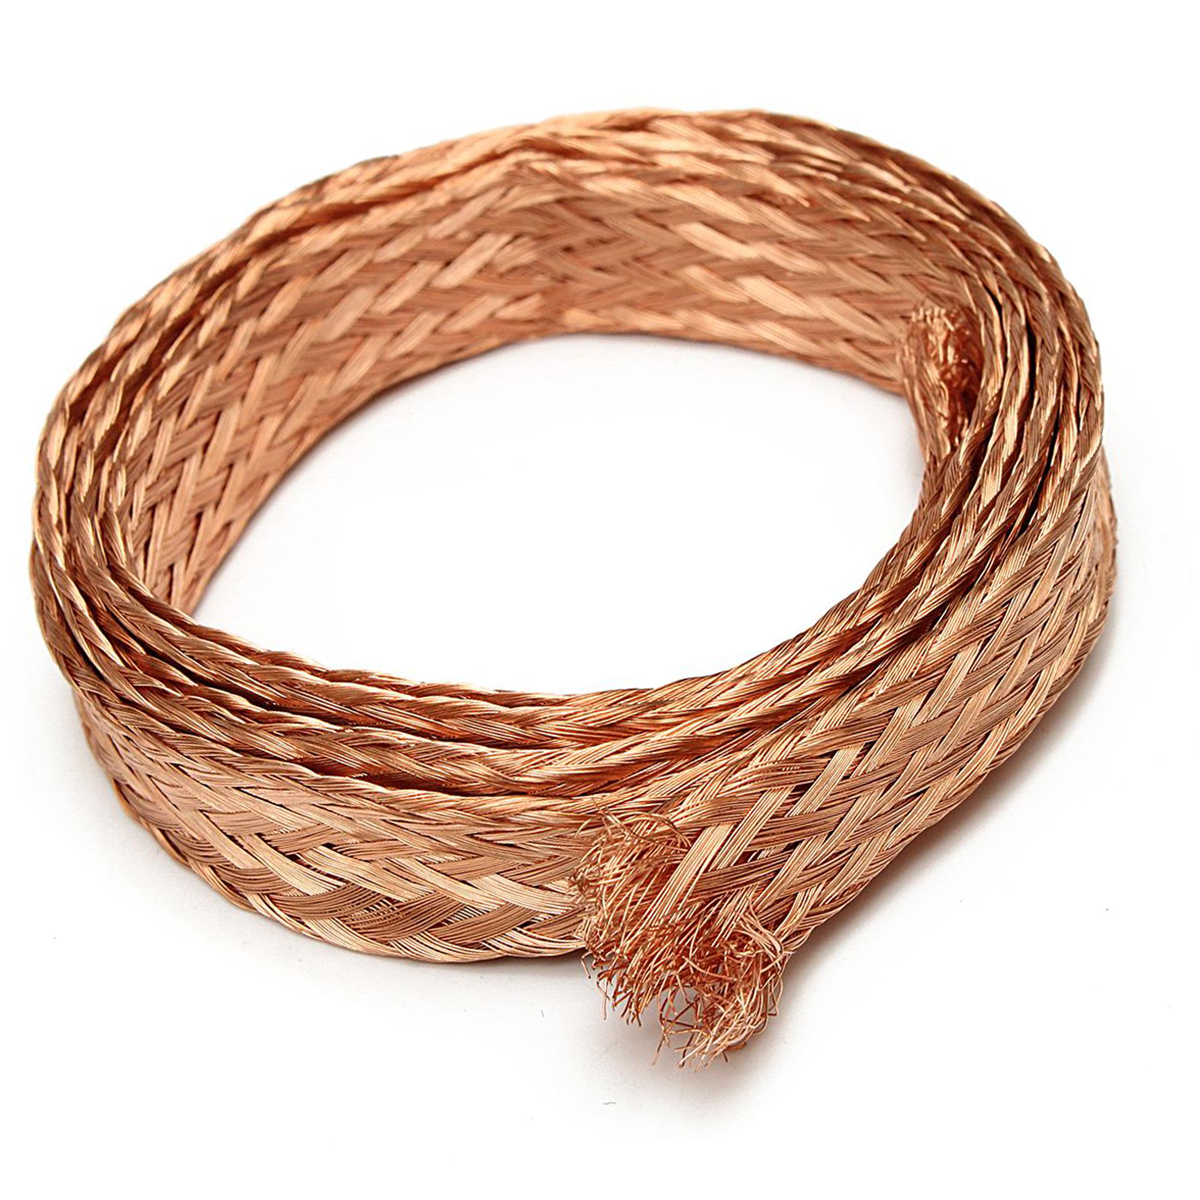 1pc 1m/3.3 Ft Flat Copper Braid Cable Bare Copper Braid Wire Ground Lead 11mm Width  1m 15mm flat tinned copper braid sleeve screening tubular cable diy